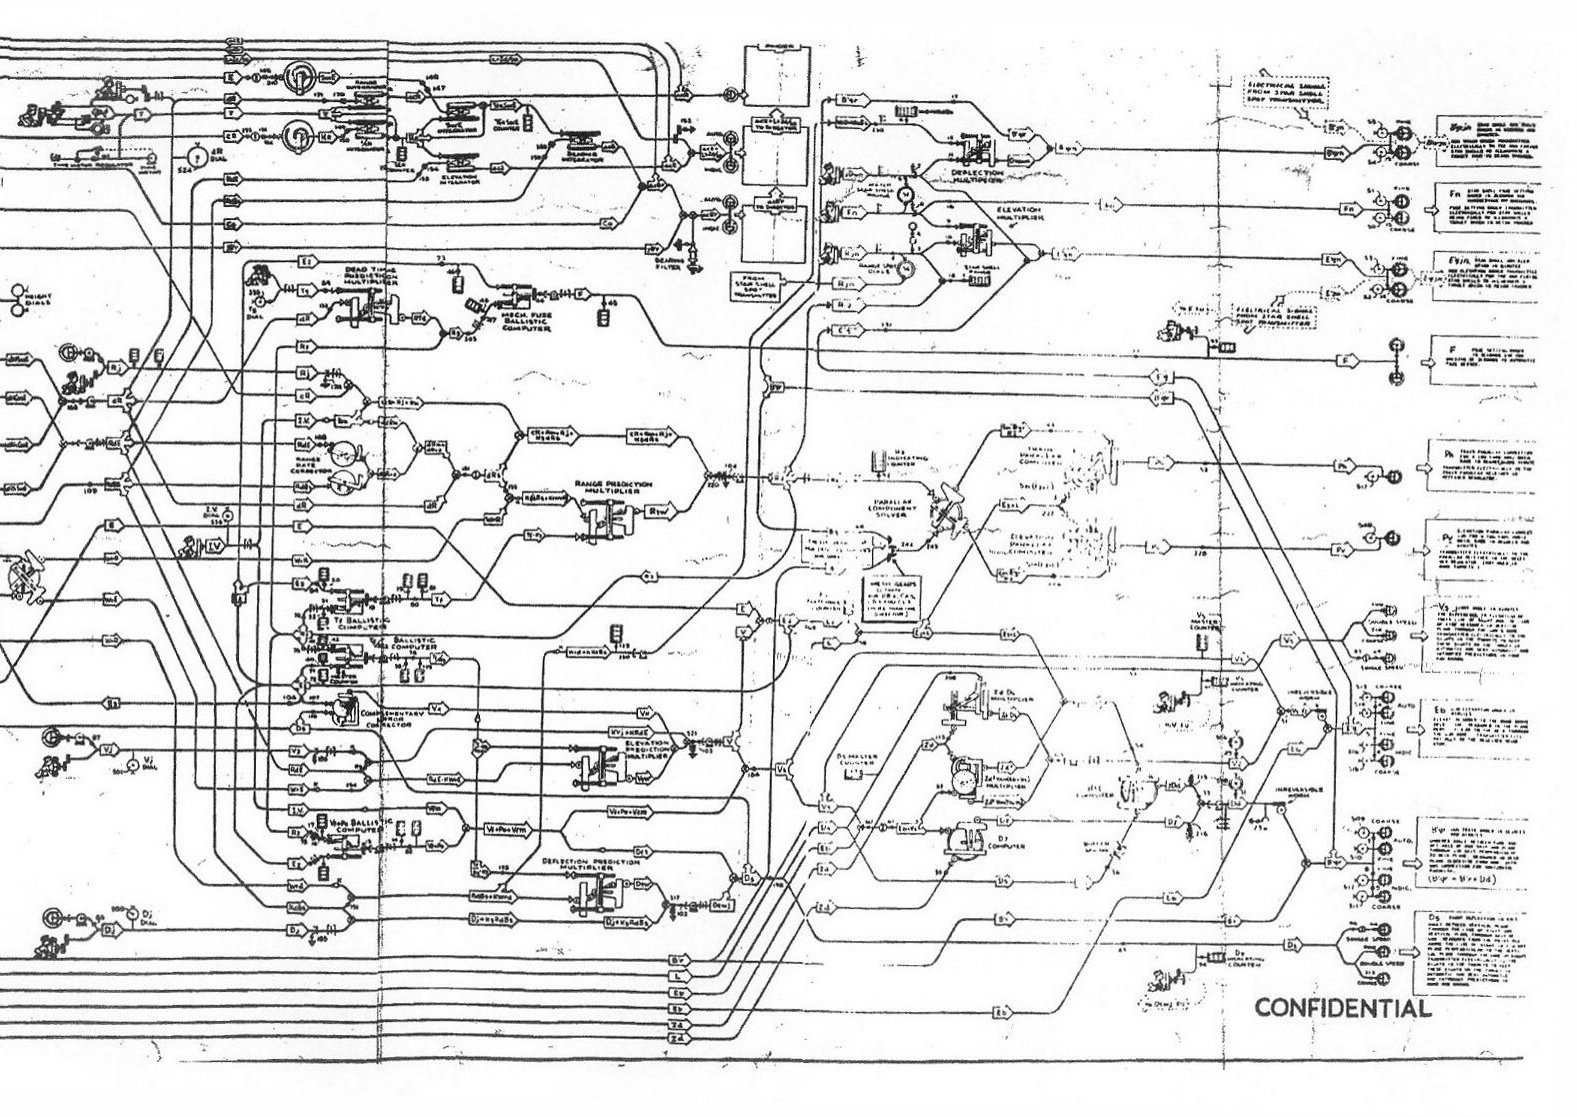 flow schematic computer mk 1mod 7 rh eugeneleeslover com computer keyboard schematics build schematics computer craft